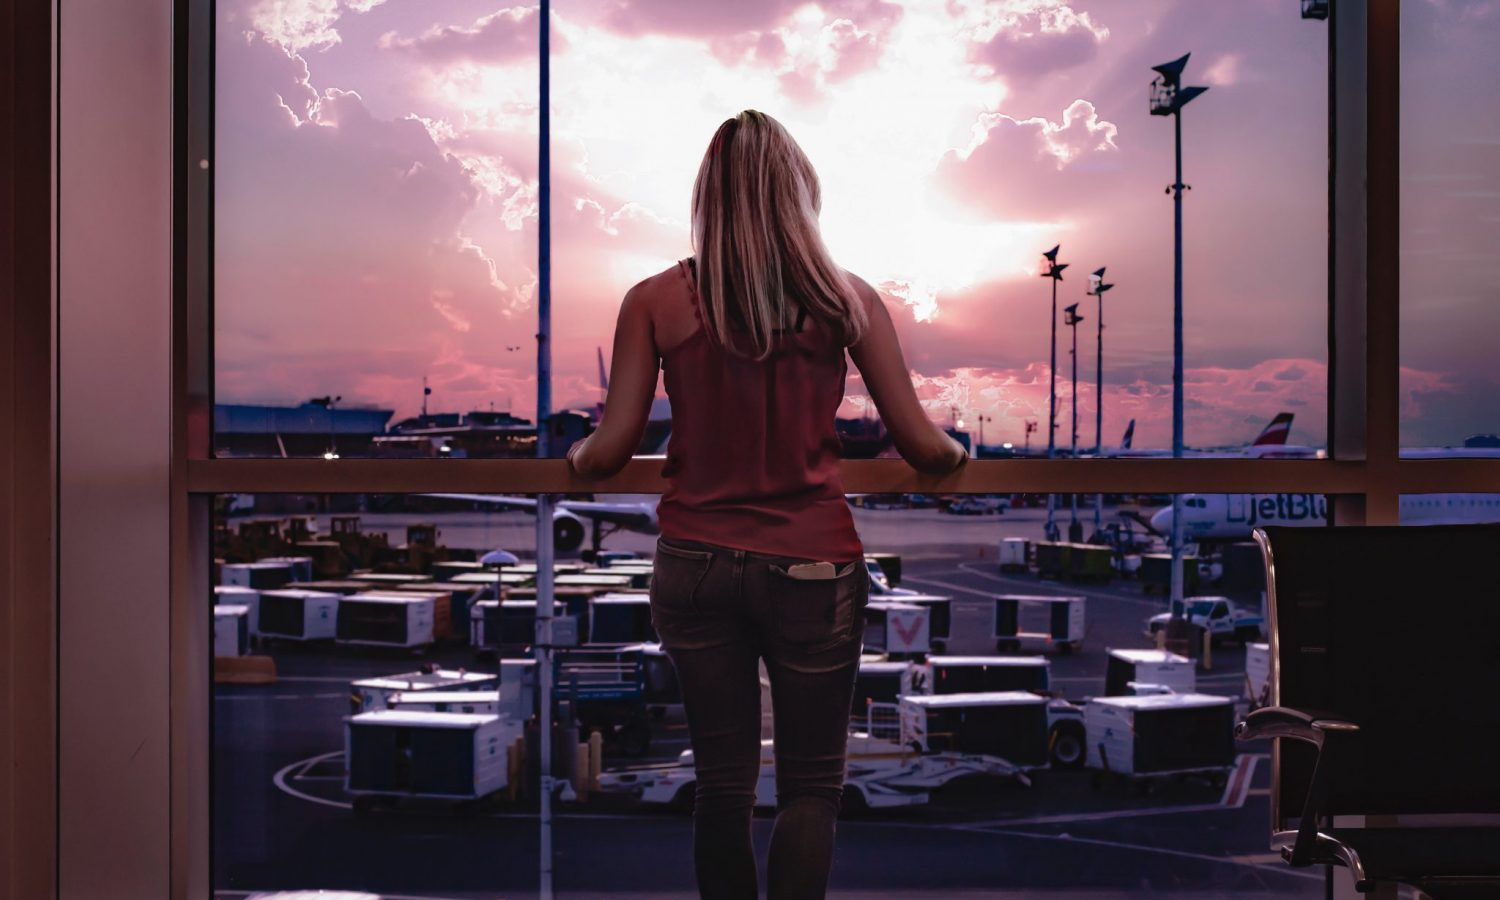 Delayed Or Cancelled Flight? Here's What You Should Do